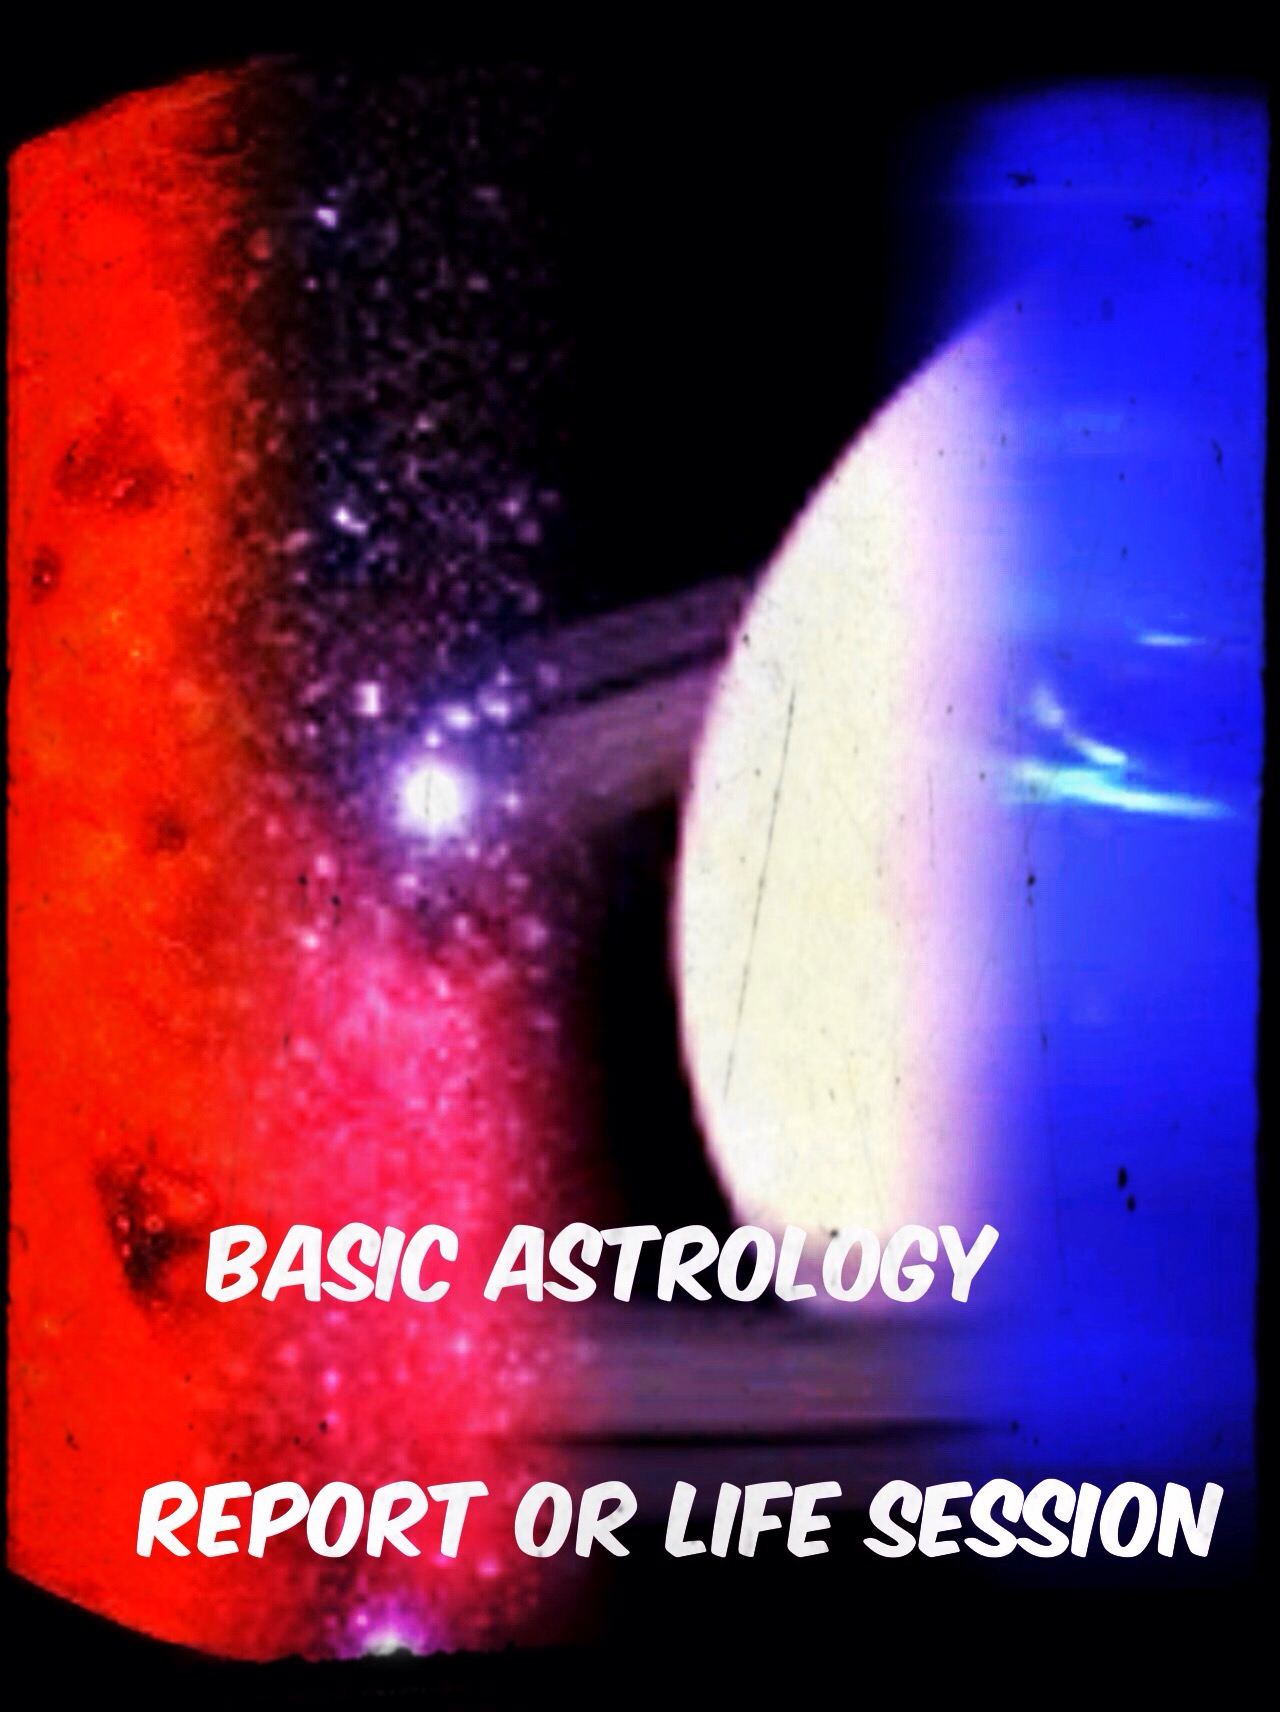 Basic Astro Birth Chart Report Of Astro Life Coaching Session